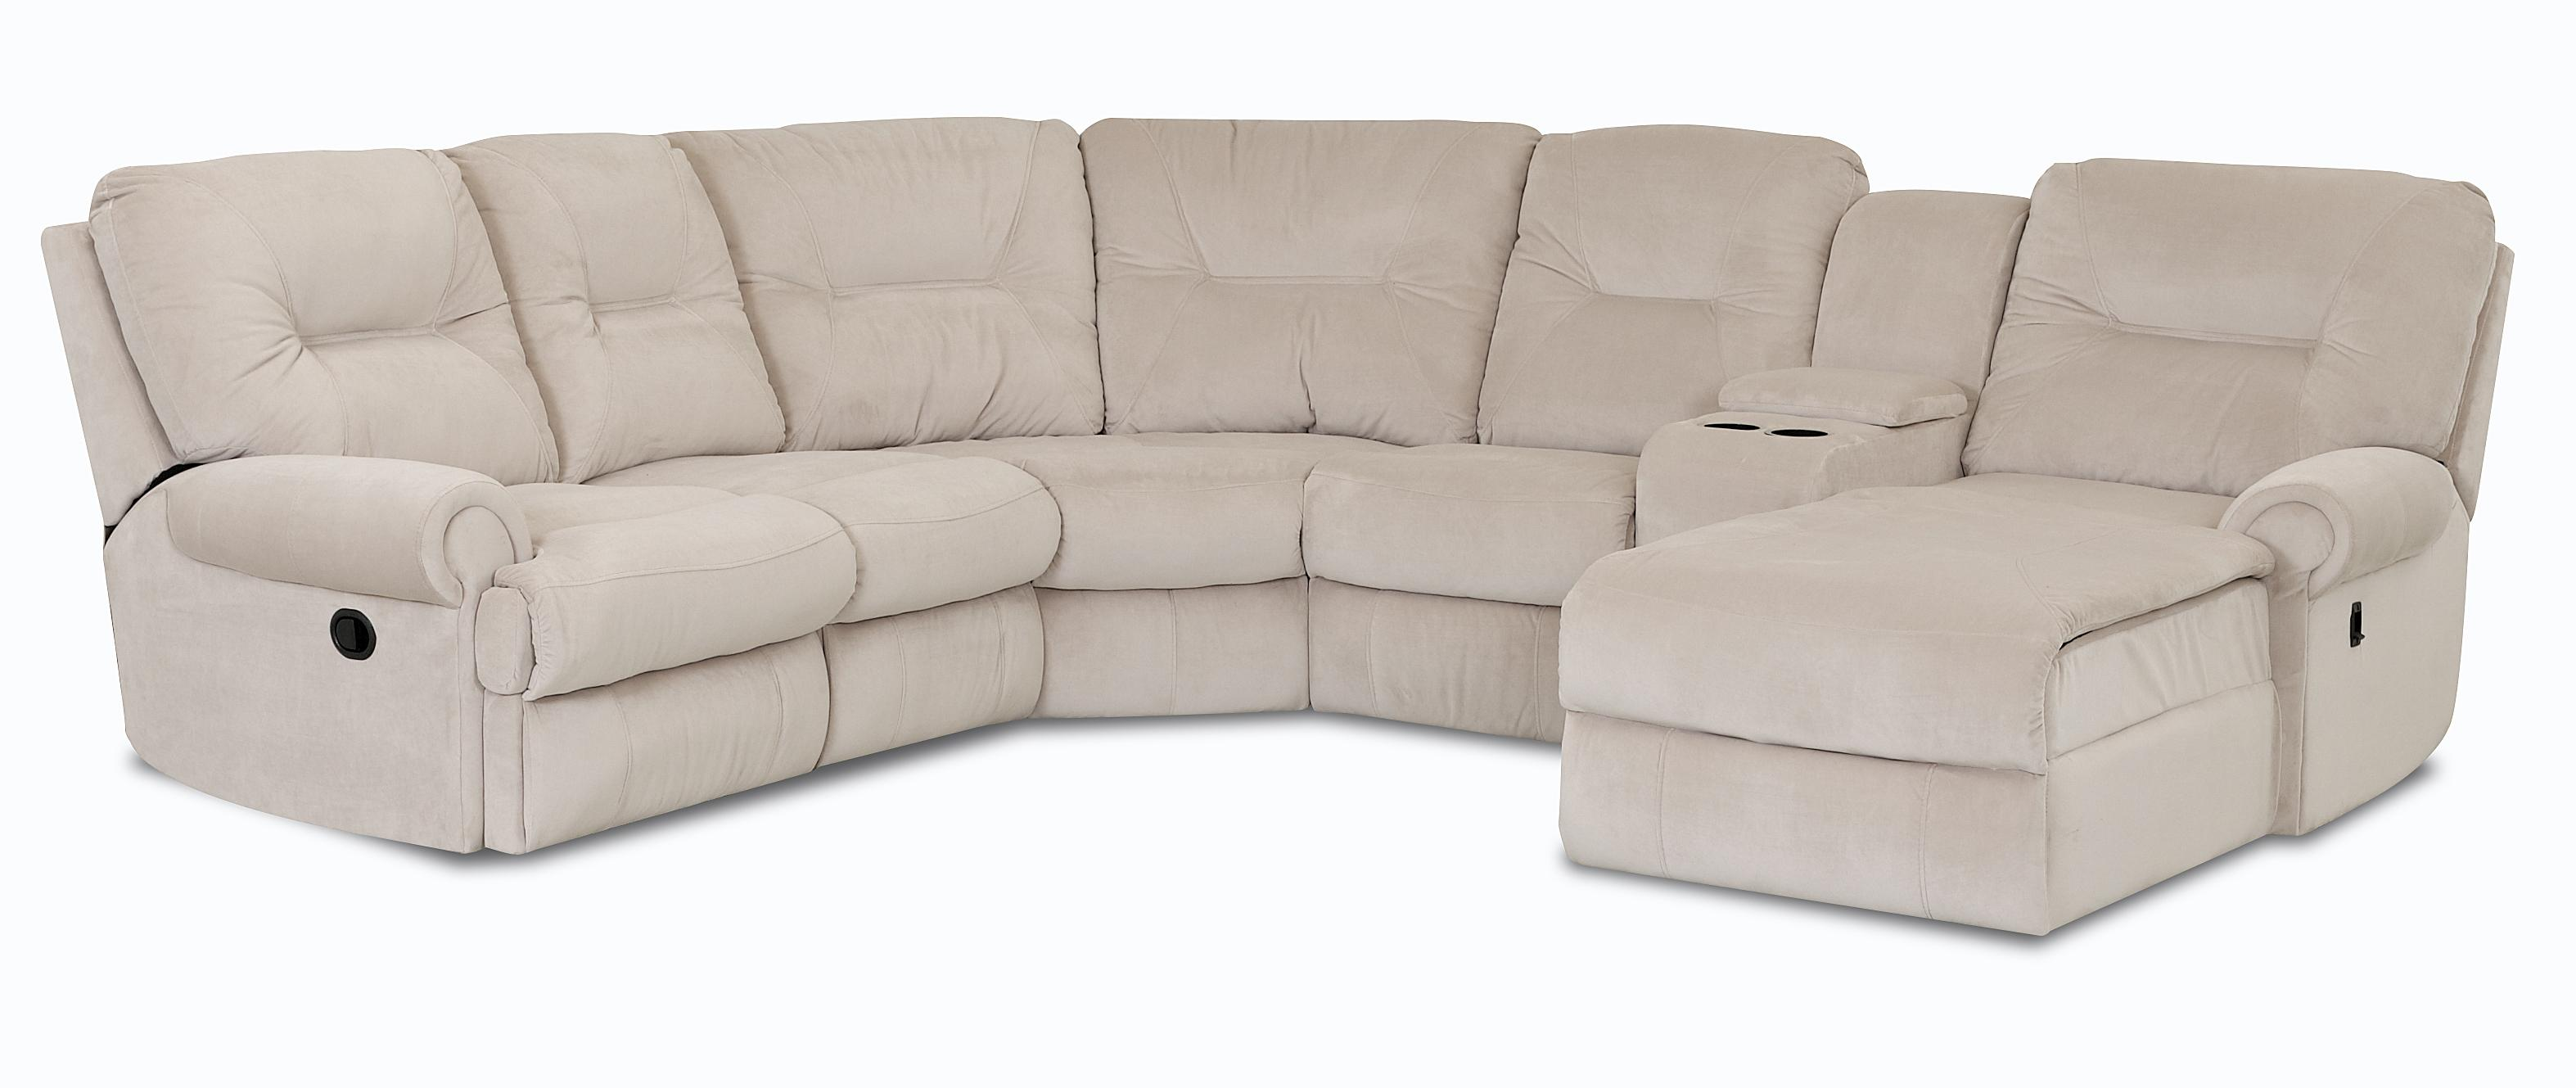 Traditional reclining sectional sofa by klaussner wolf for Sectional sofas wolf furniture